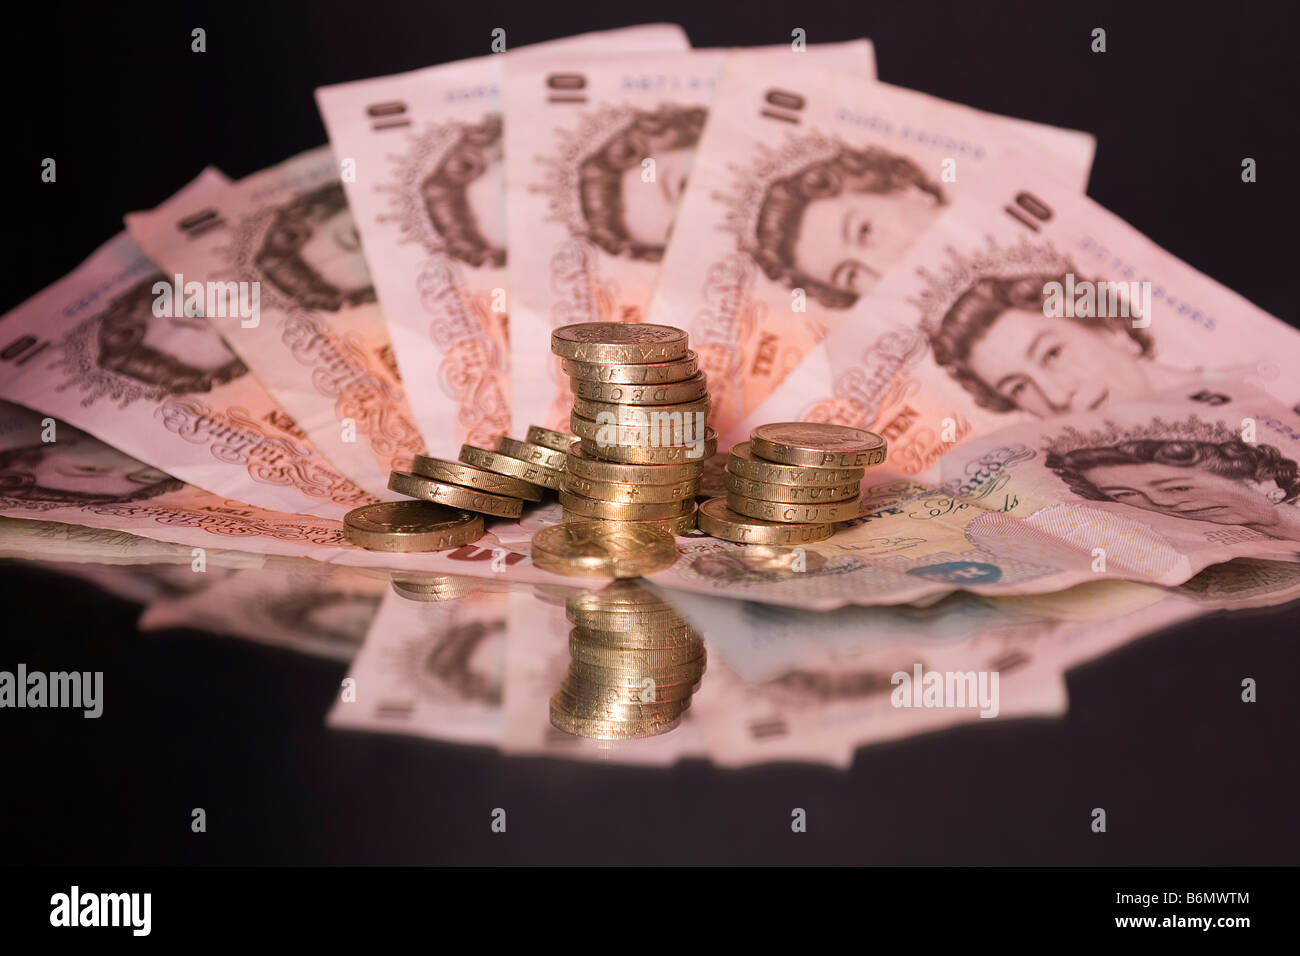 This picture is design to reflect money and the markets. - Stock Image